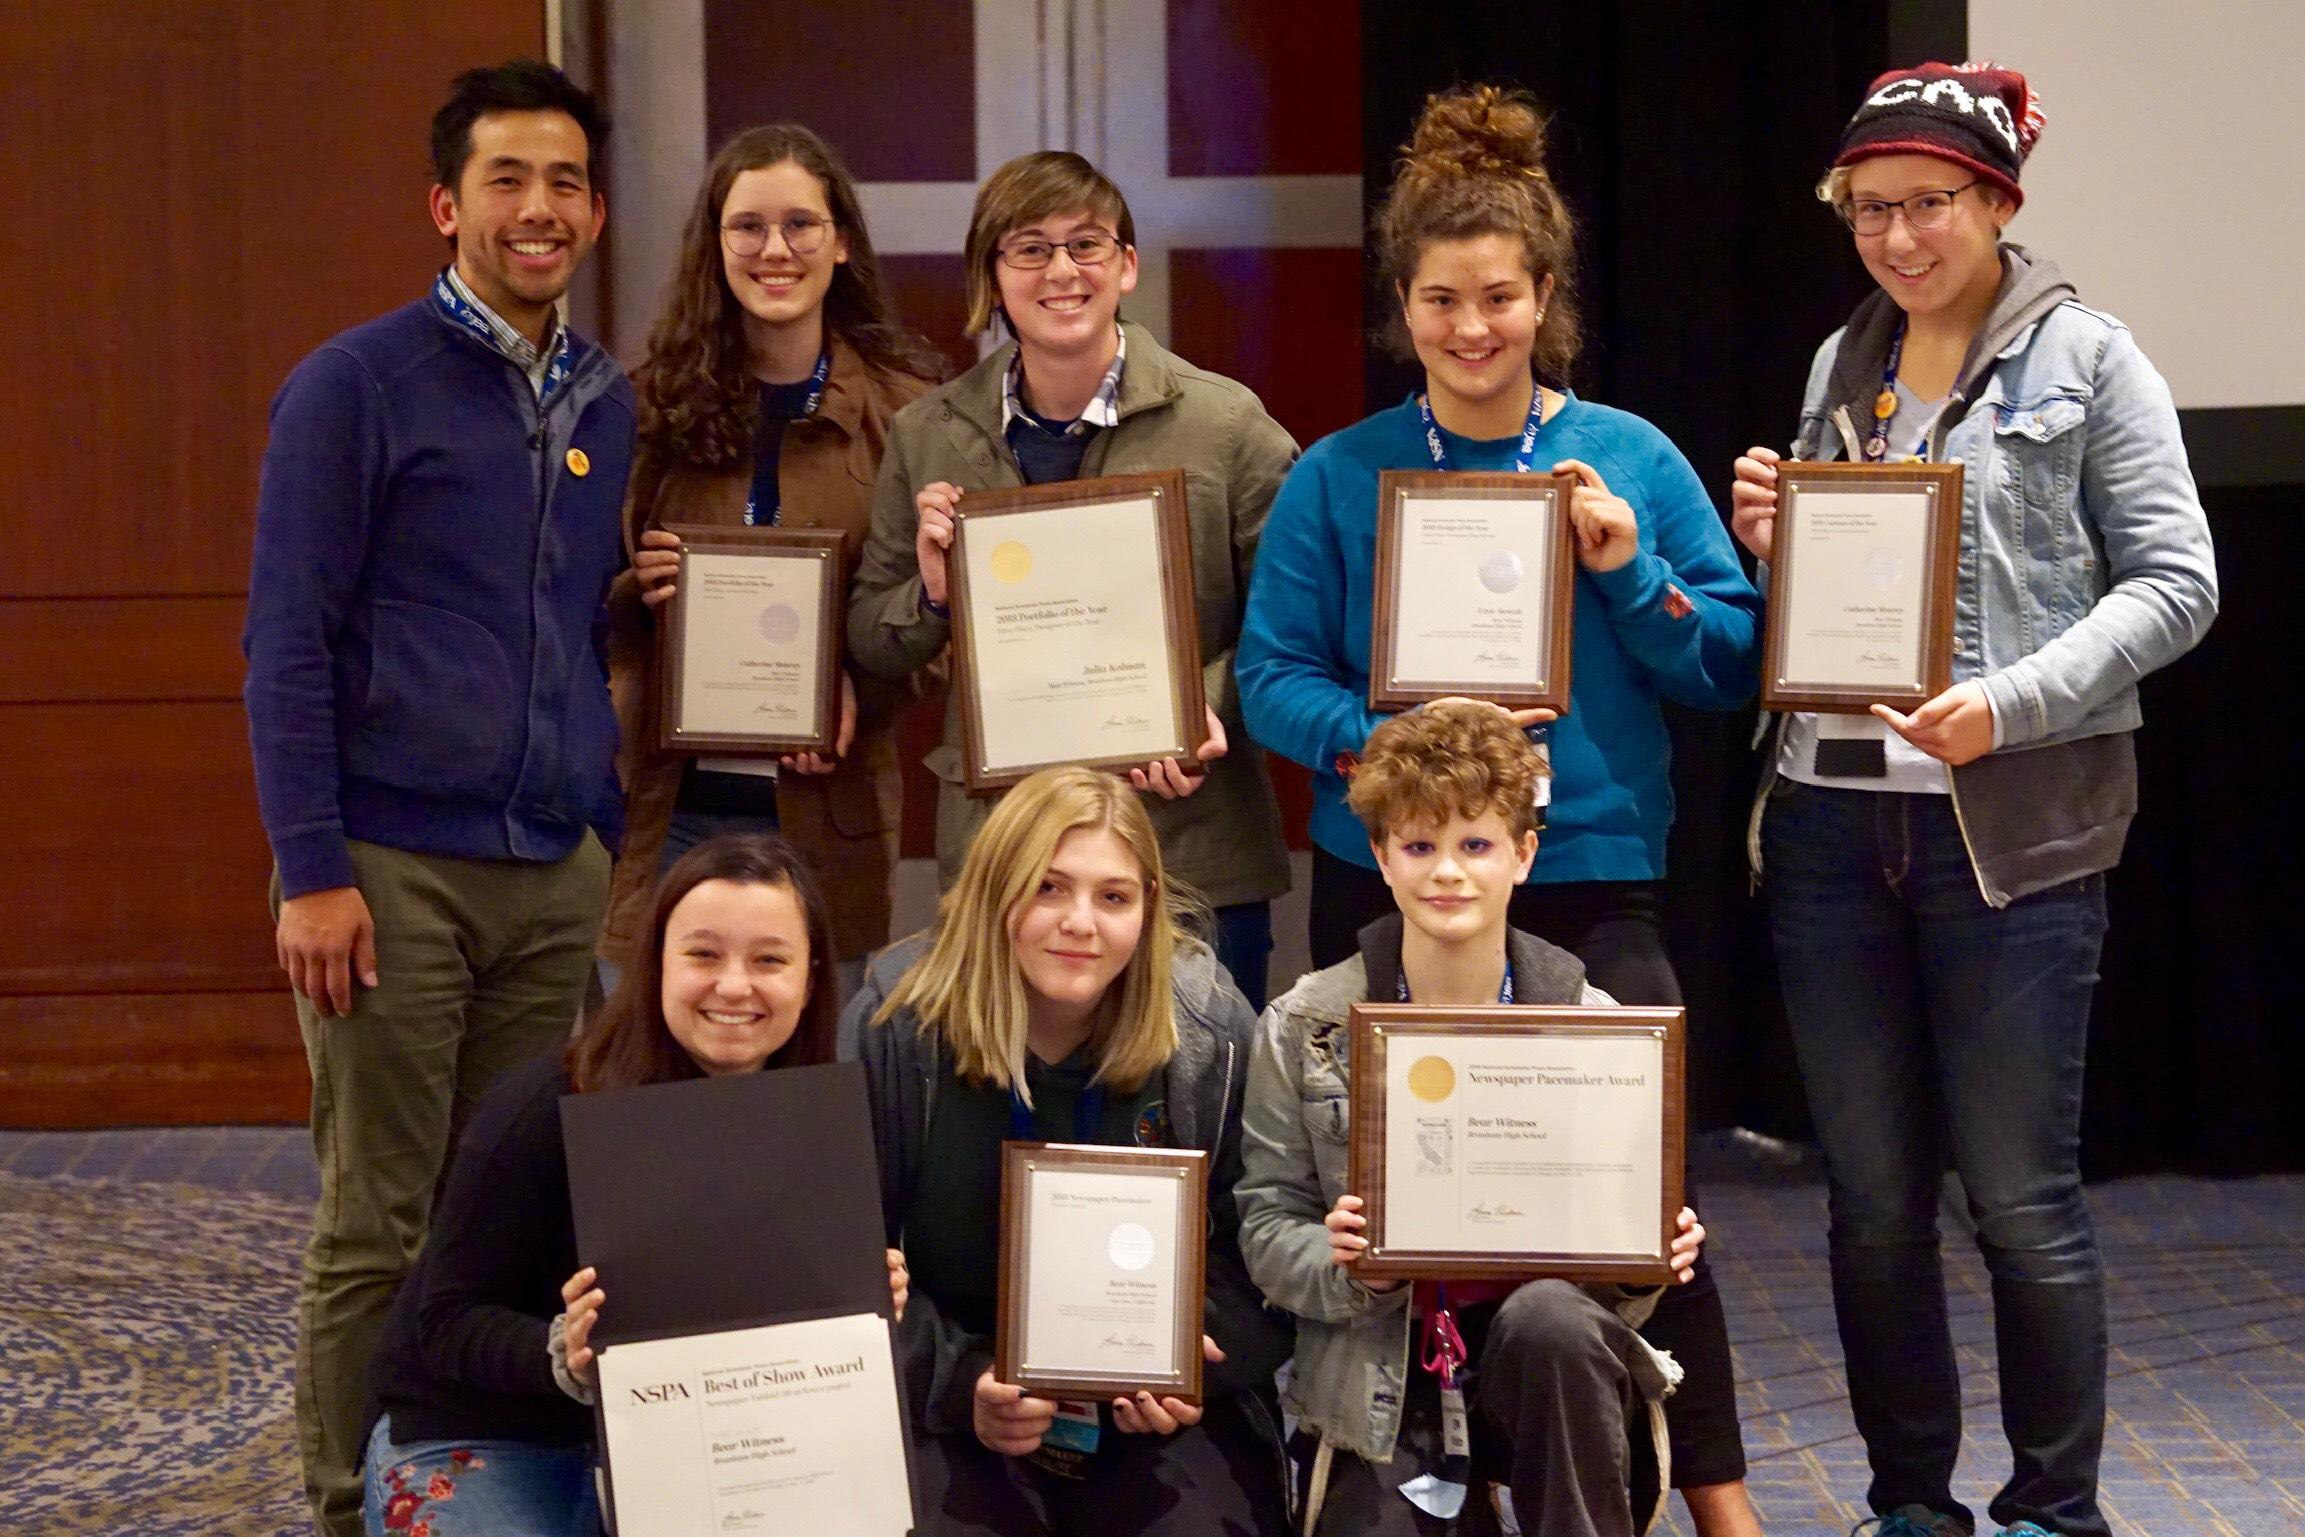 Bear Witness journalists holding their Pacemaker Award